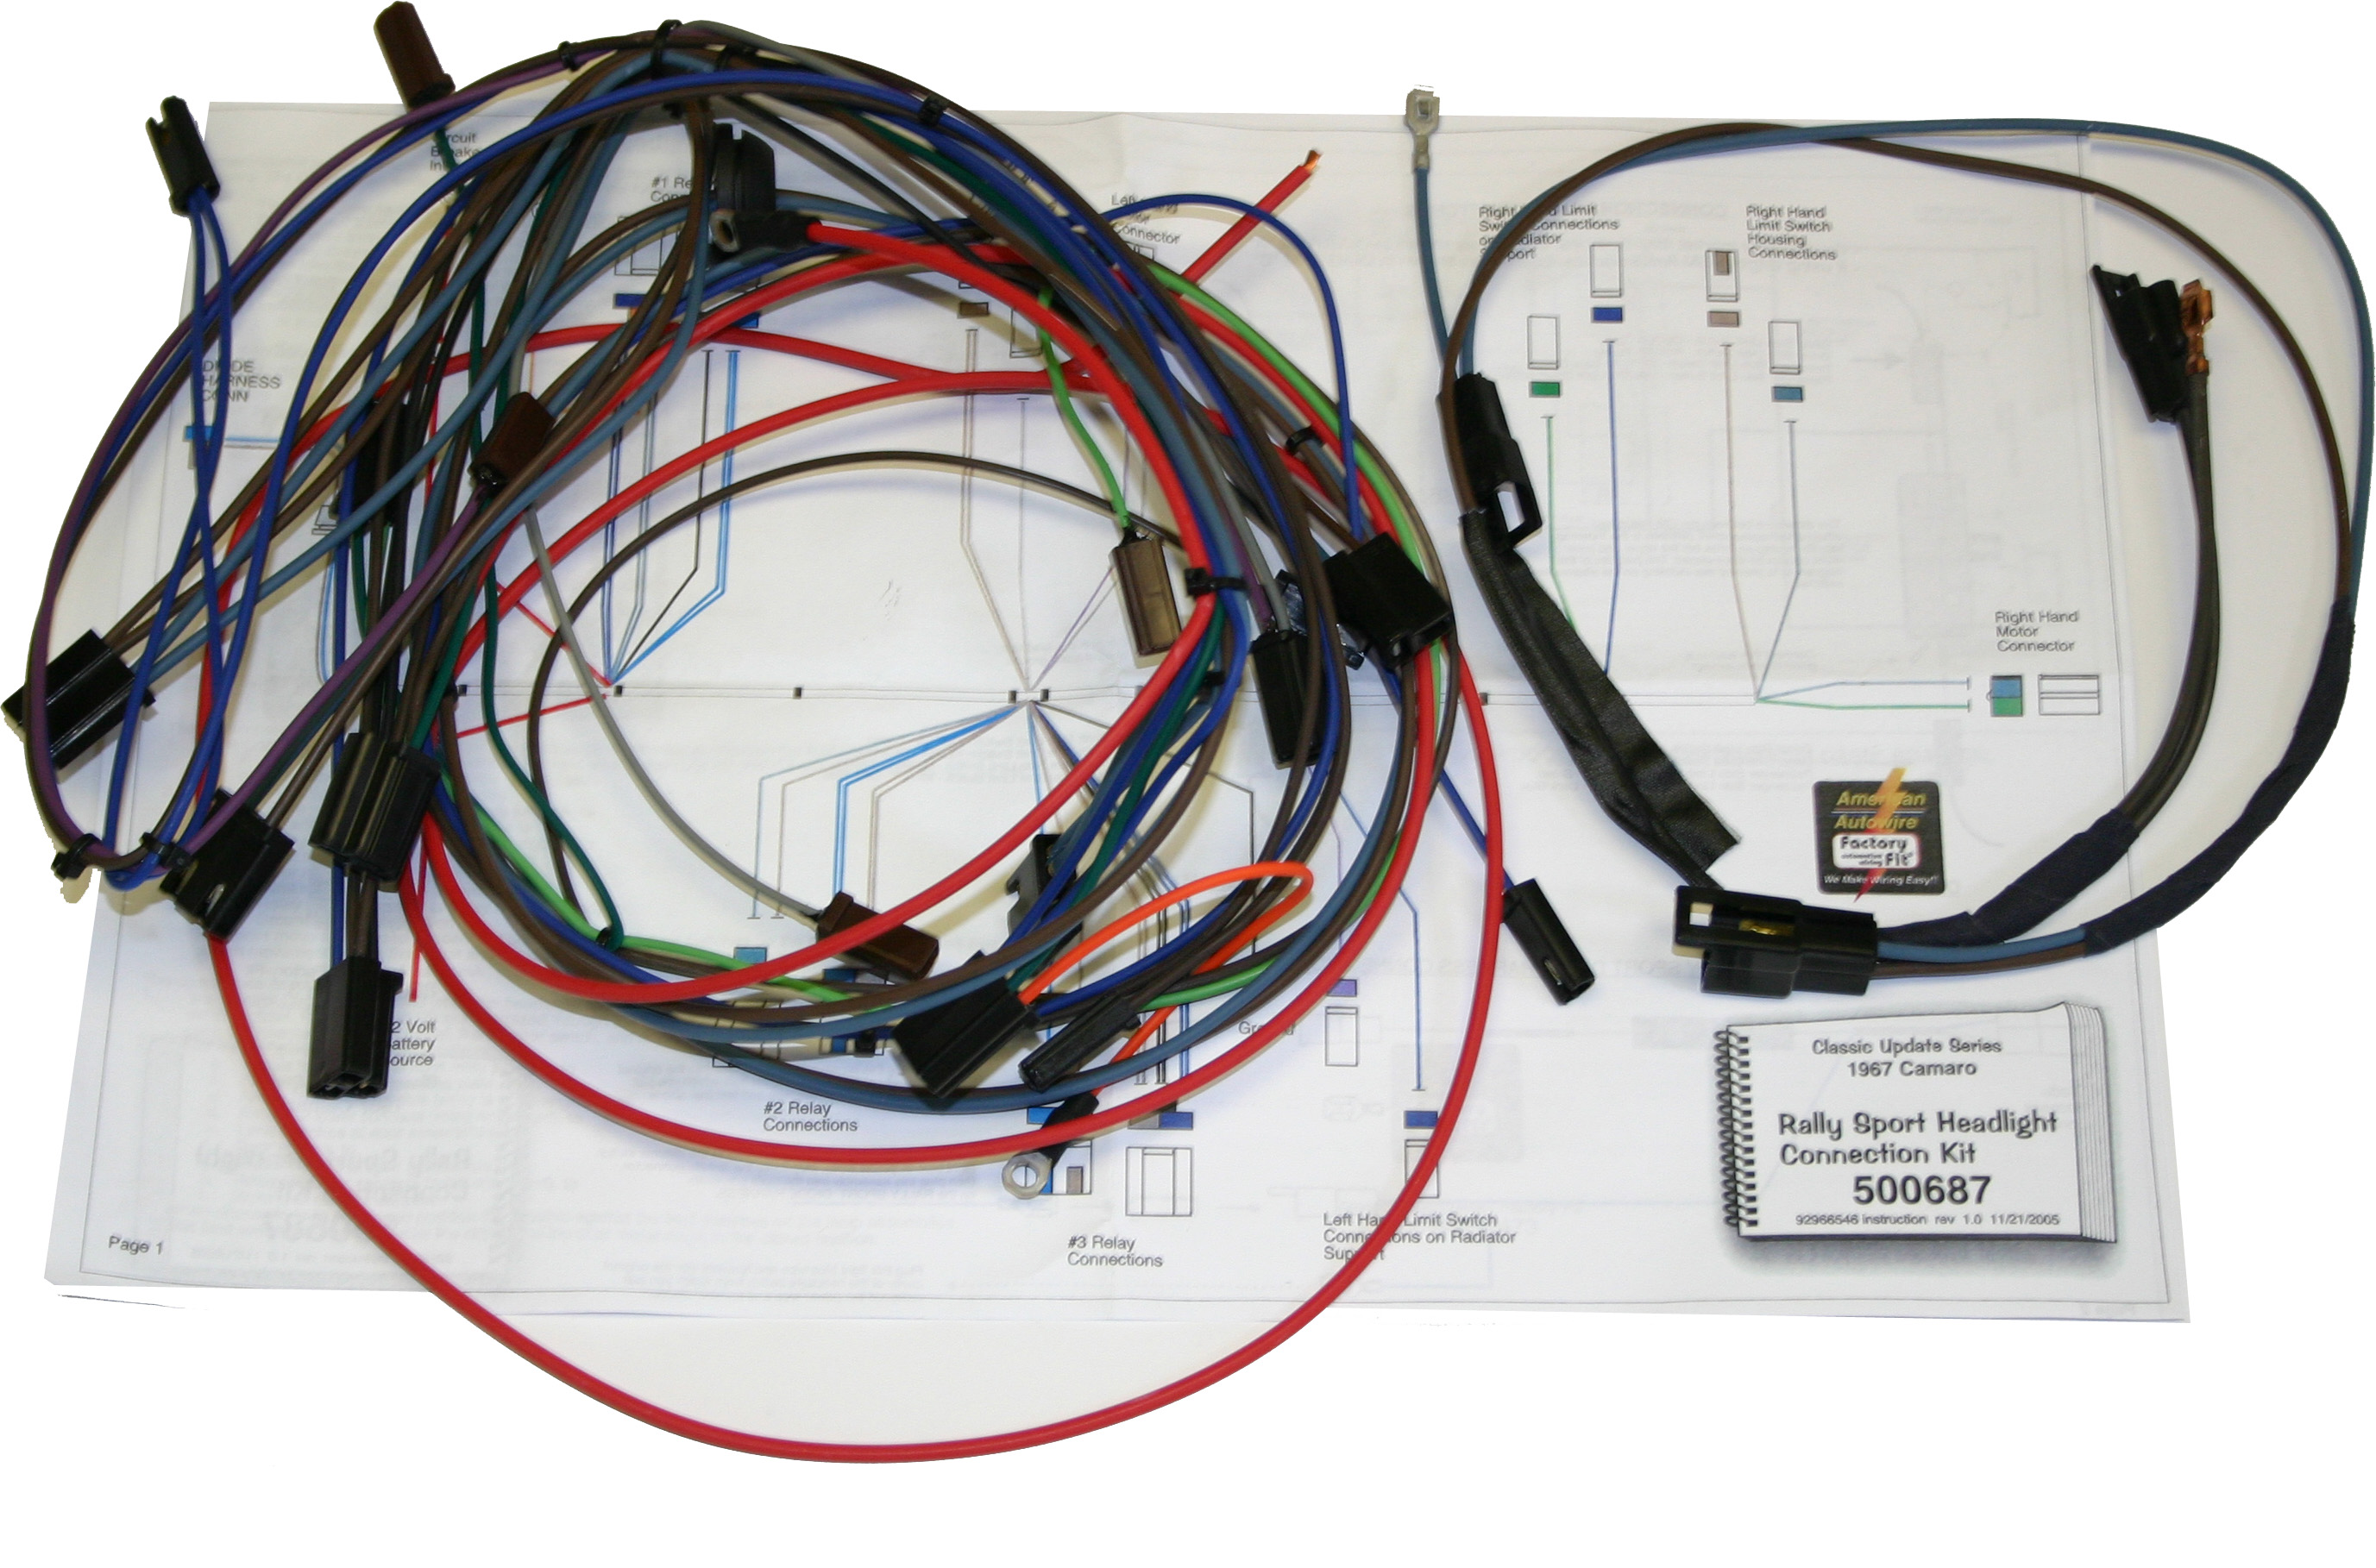 Peachy Ls1 Painless Wiring Kits Wiring Diagram Wiring 101 Cranwise Assnl